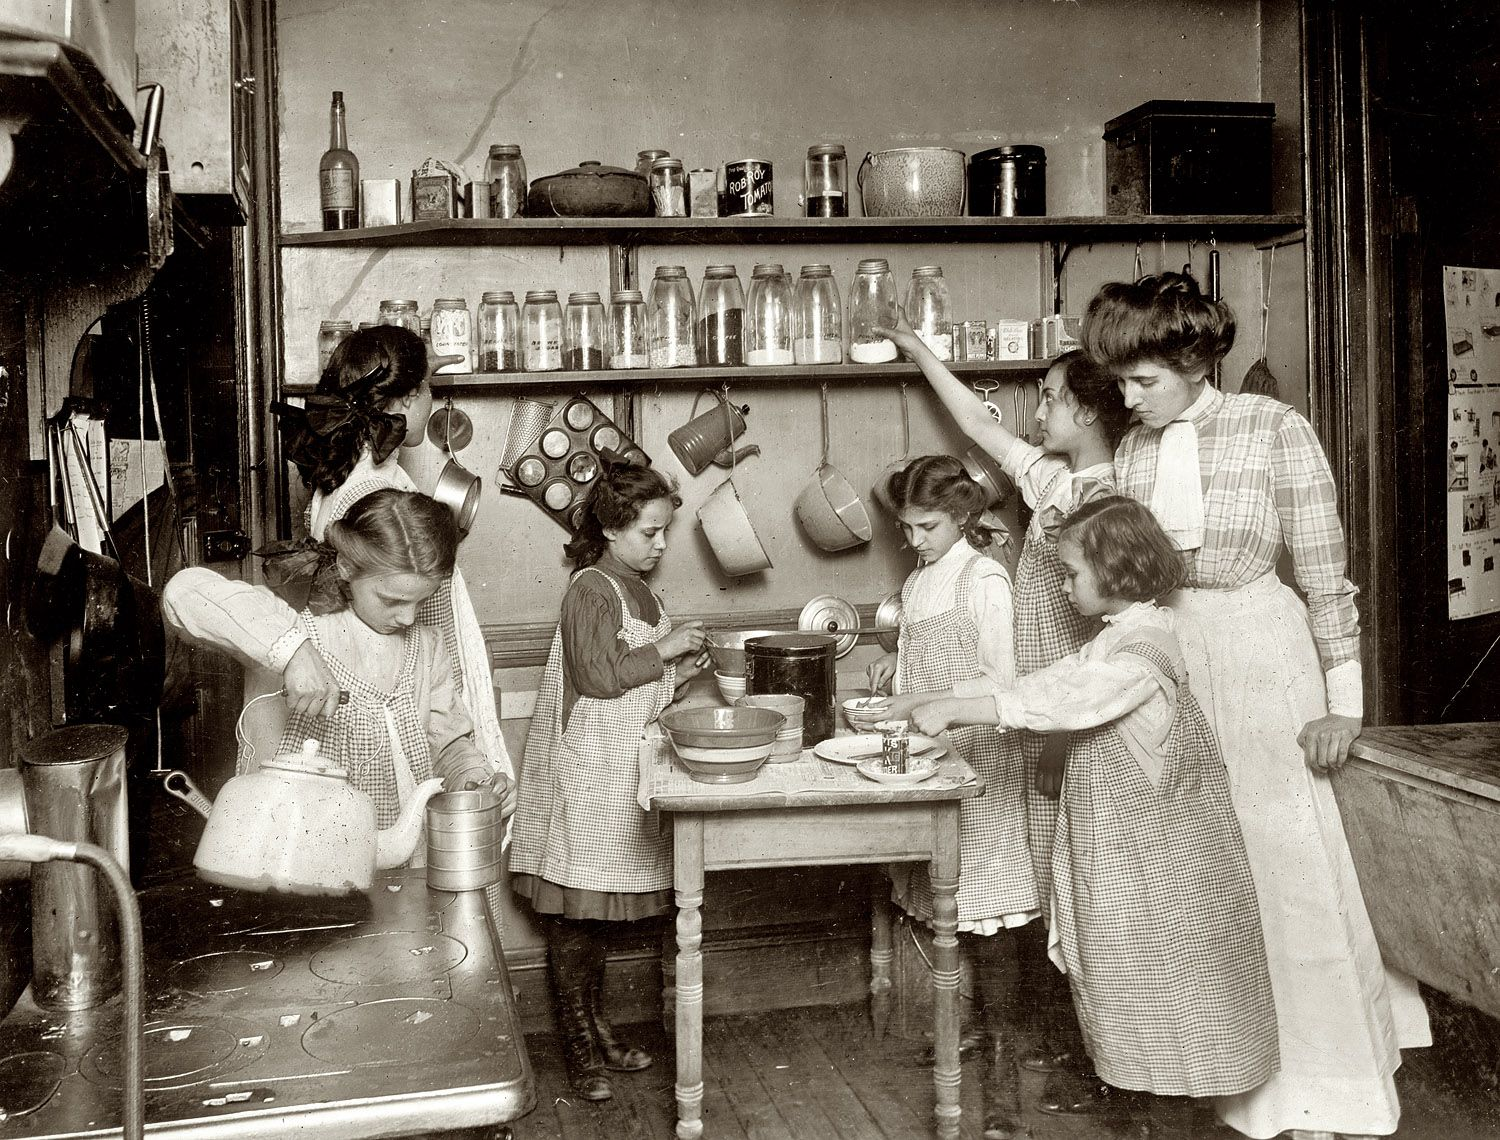 "In the Kitchen: 1910. ""Home economics in public schools. Kitchen in housekeeping flat, New York,"" circa 1910. National Photo Company Collection glass negative. (fiction) Lillie Mae Parkman (at table, left side) with her mother & sisters - early 1900's."